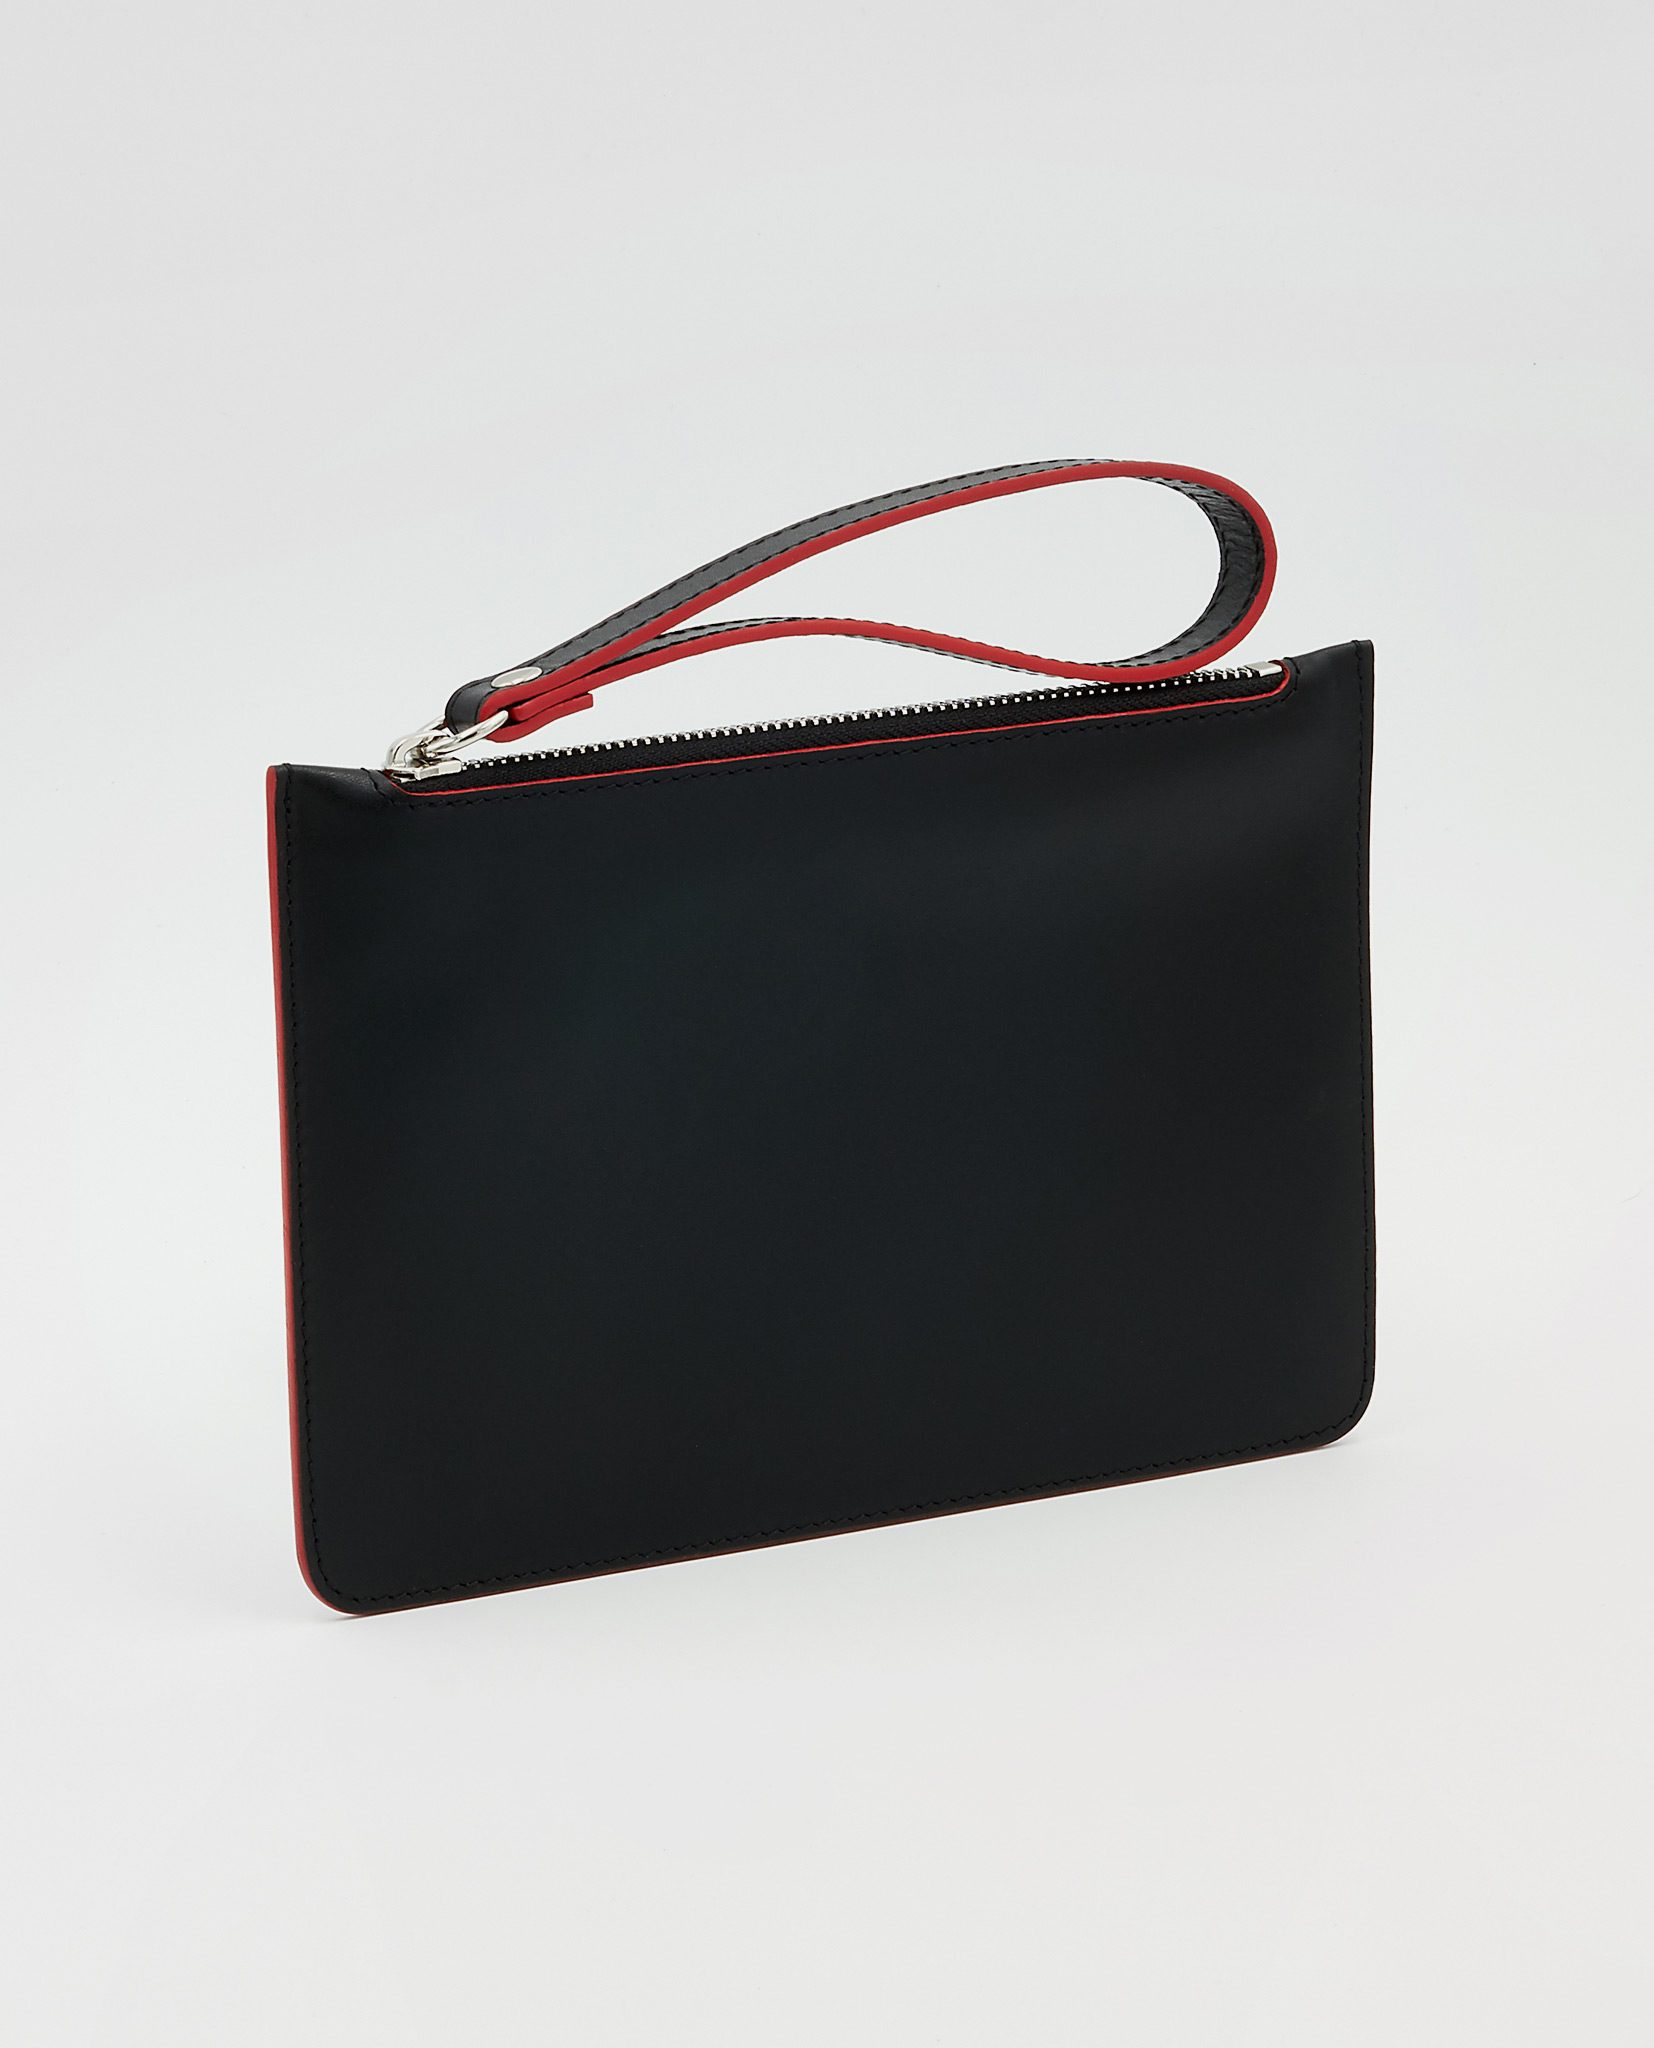 Soofre_Small-Pouch_black-red_1